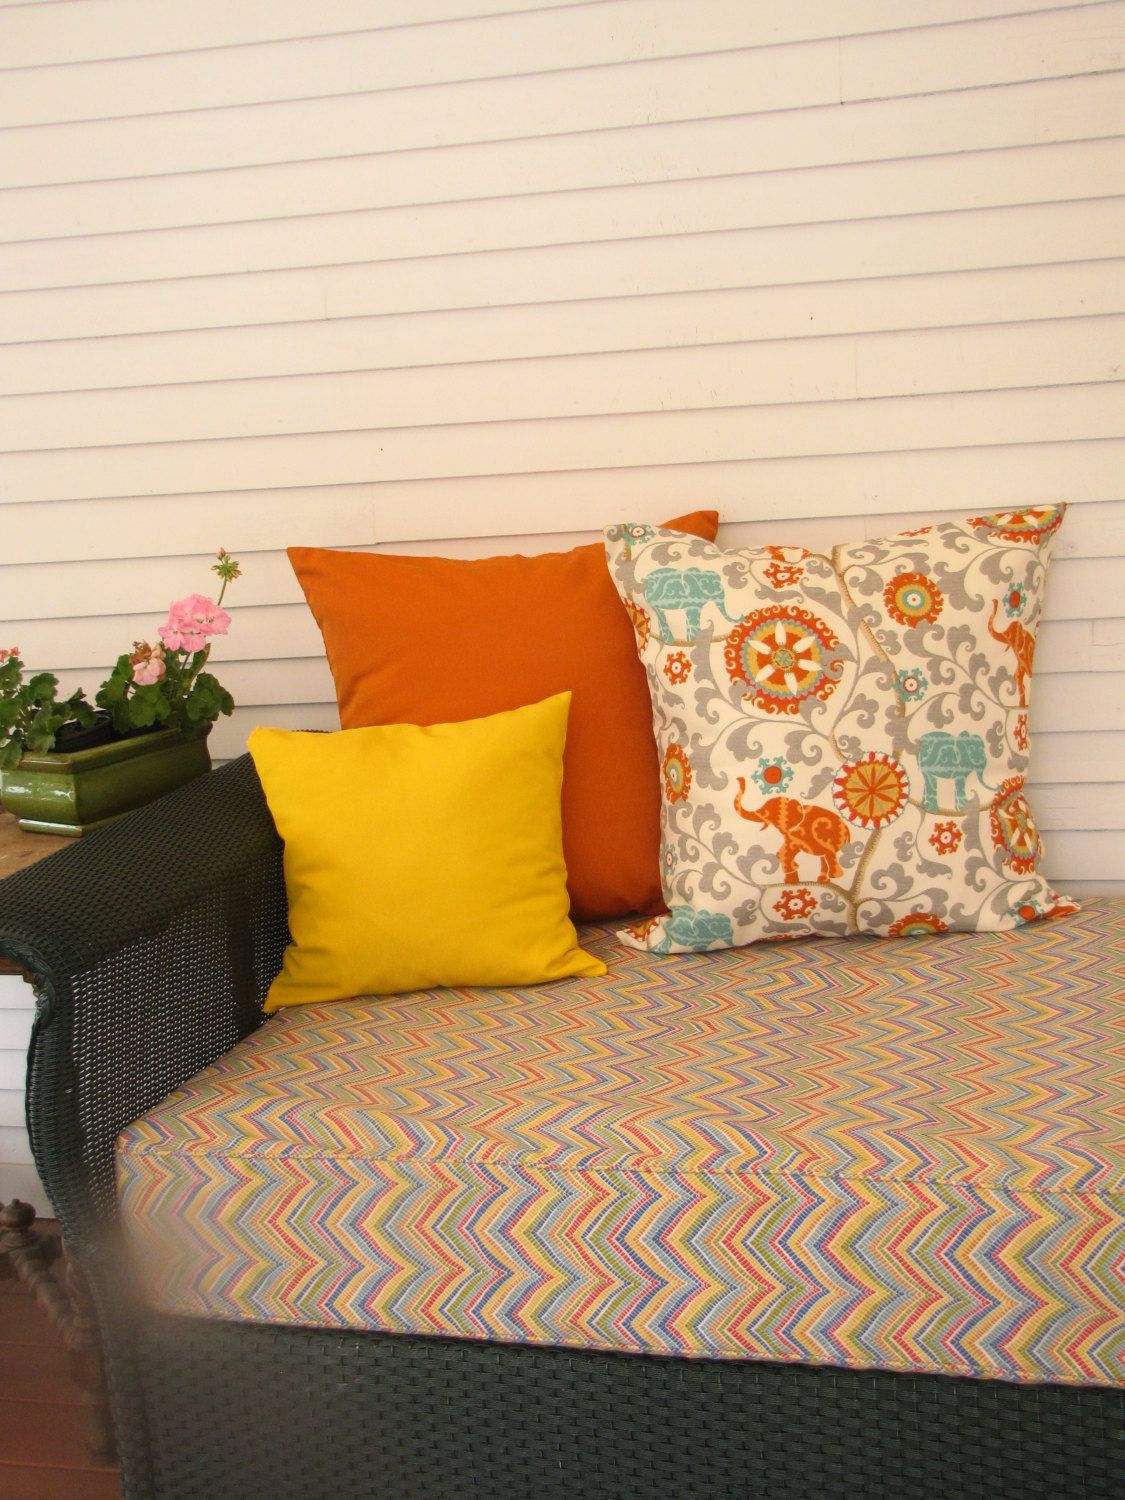 - Outdoor Mattress Cover**Porch Swing Cover**Daybed Cover**Mattress